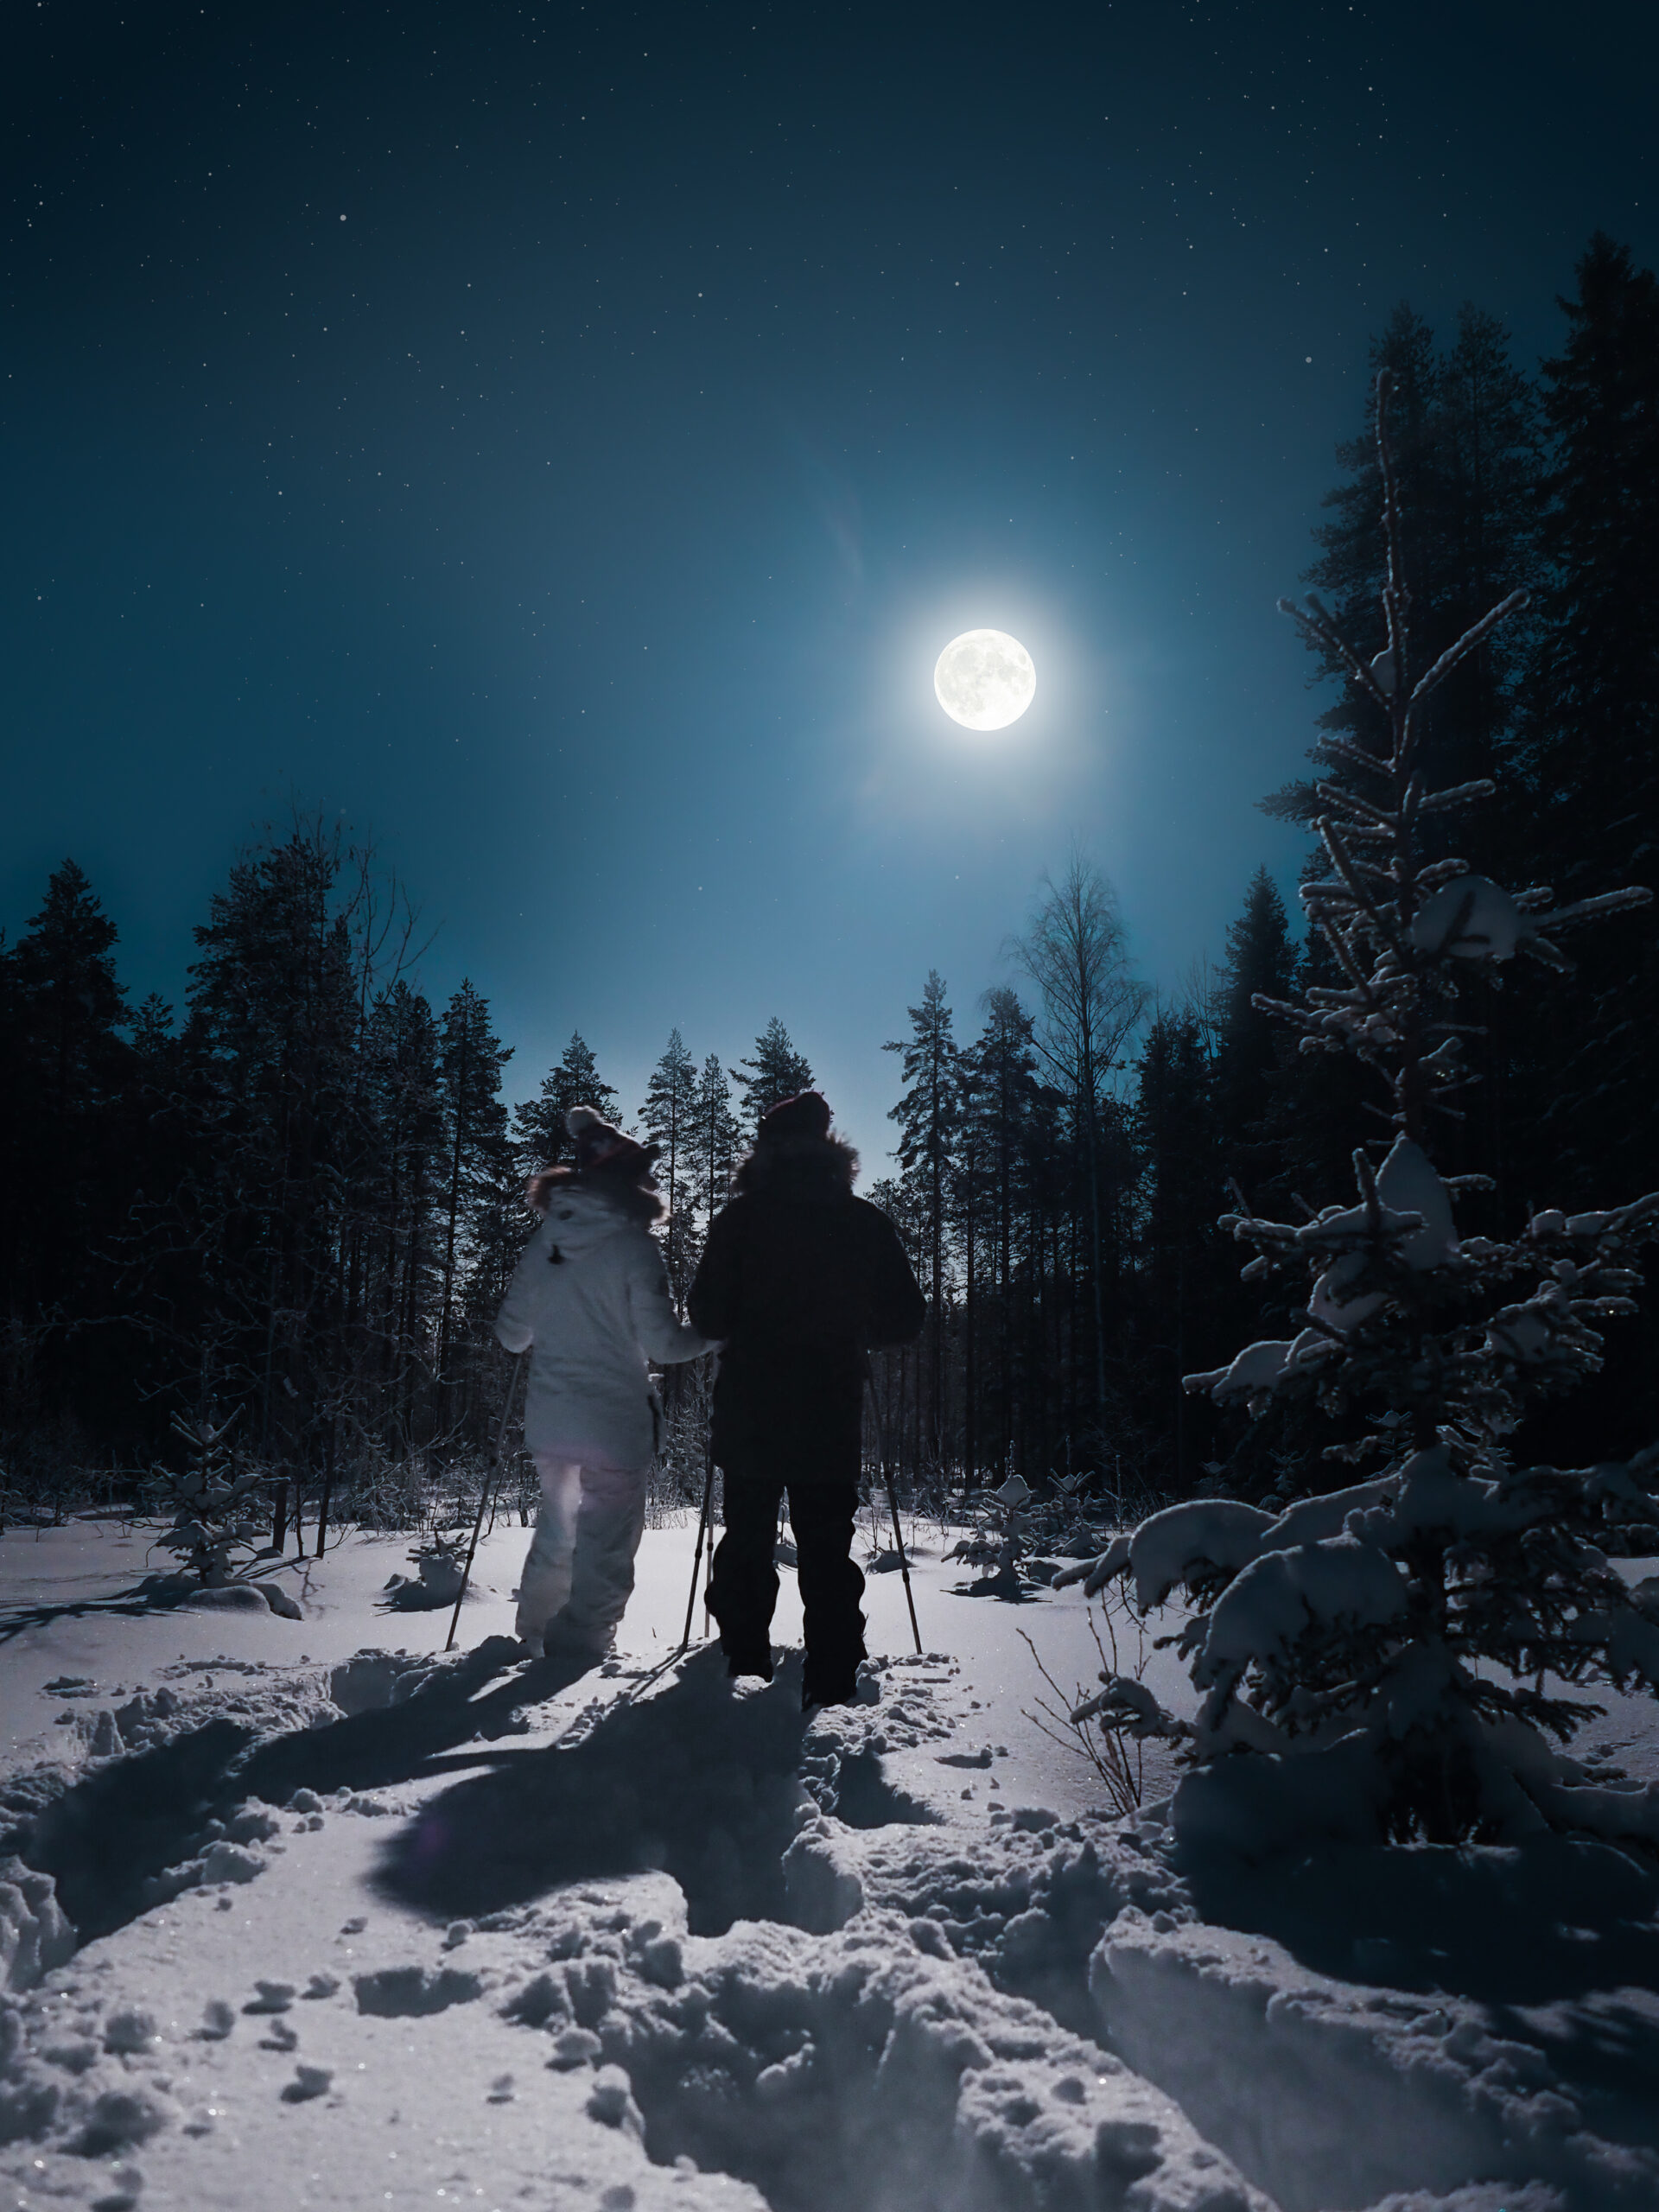 Snowshoing in the moonlight